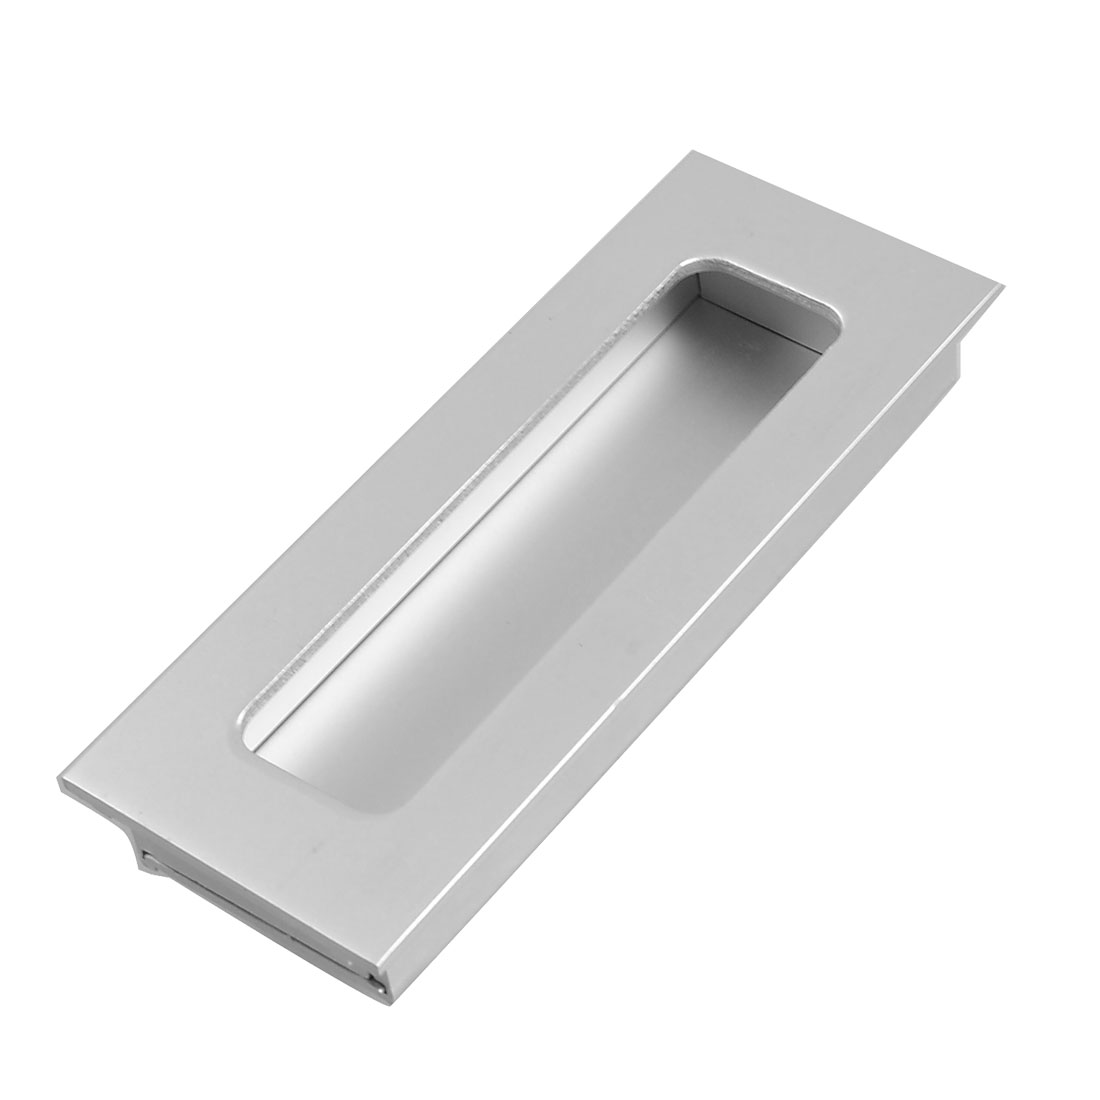 "Cabinet Silver Tone Aluminum 4.4"" Long Rectangular Flush Pull Handle"